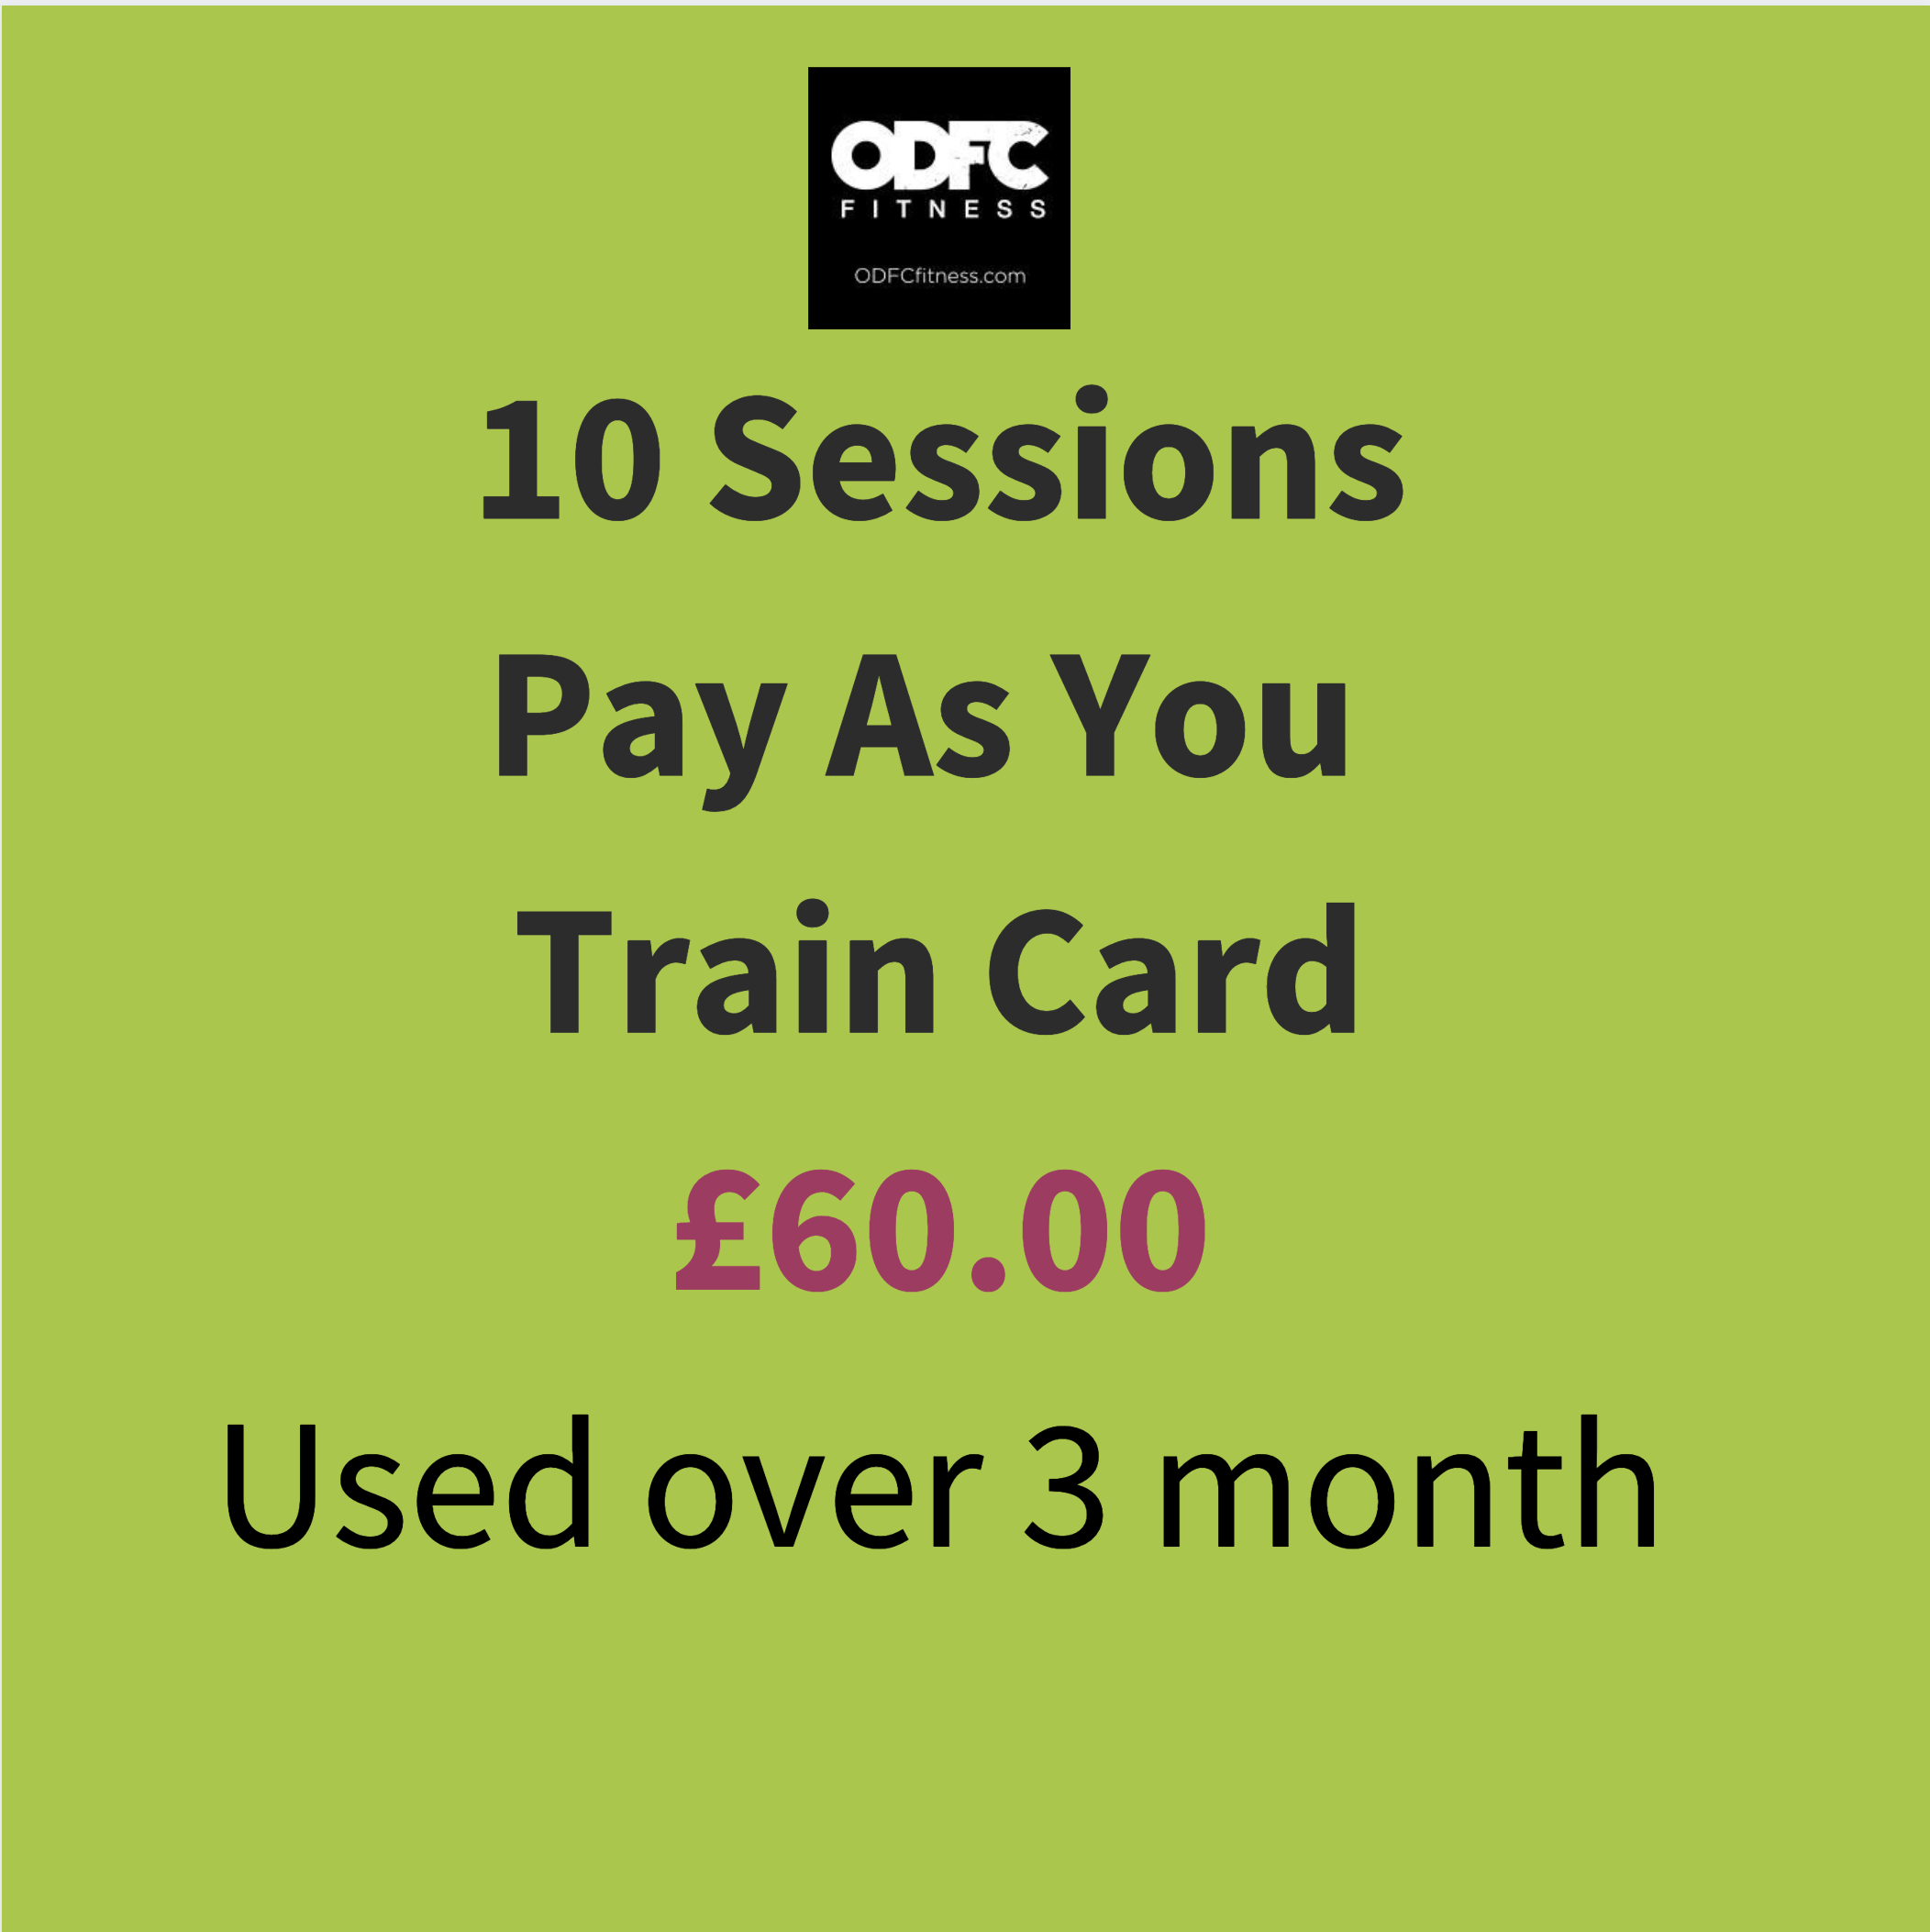 10 Sessions Pay As You Train Card